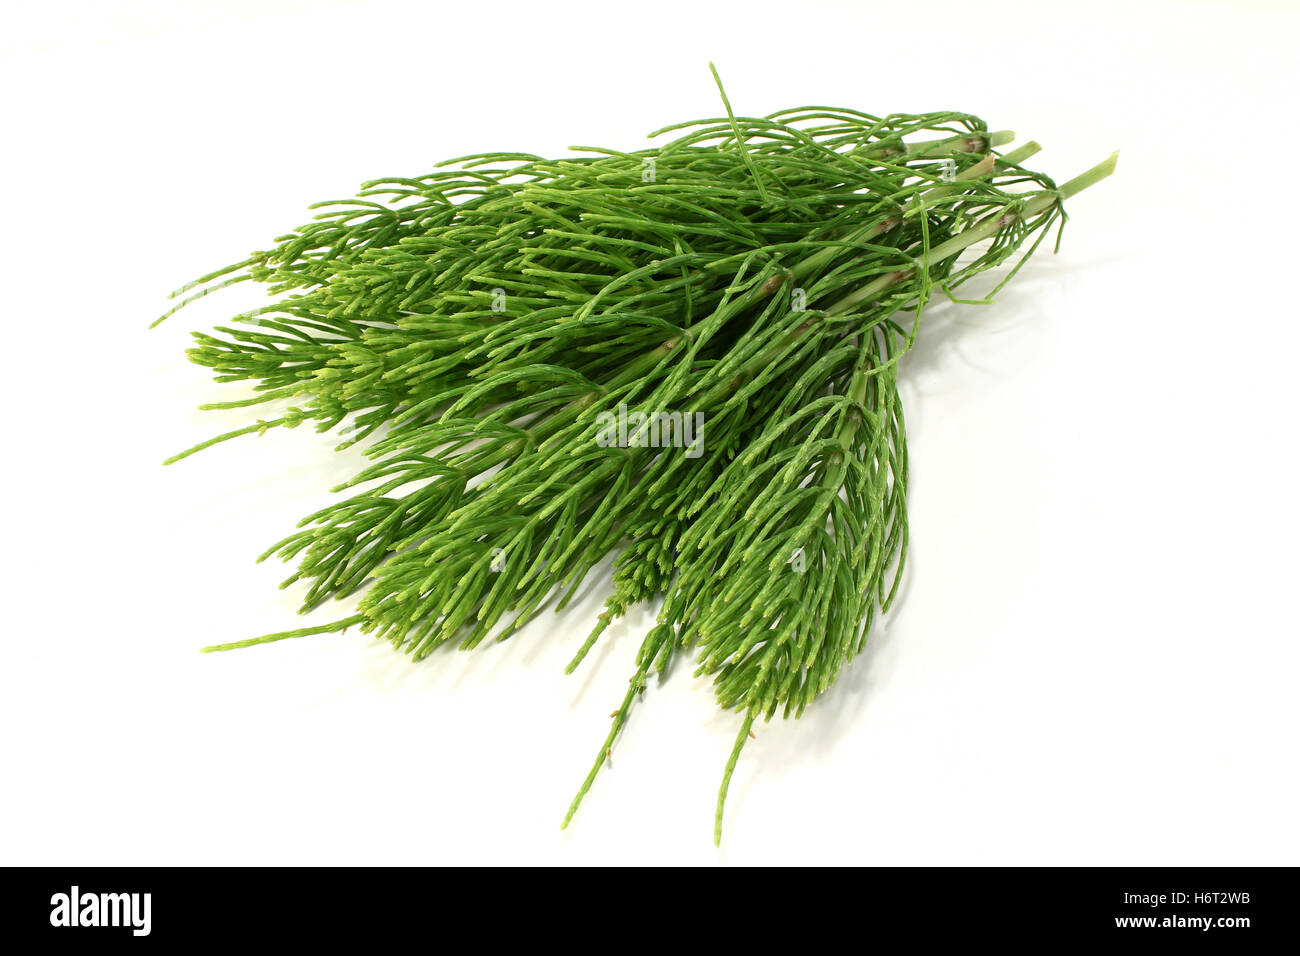 homeopathy horse tail medicinal plant naturopathy homeopathic green agriculture farming material drug anaesthetic - Stock Image